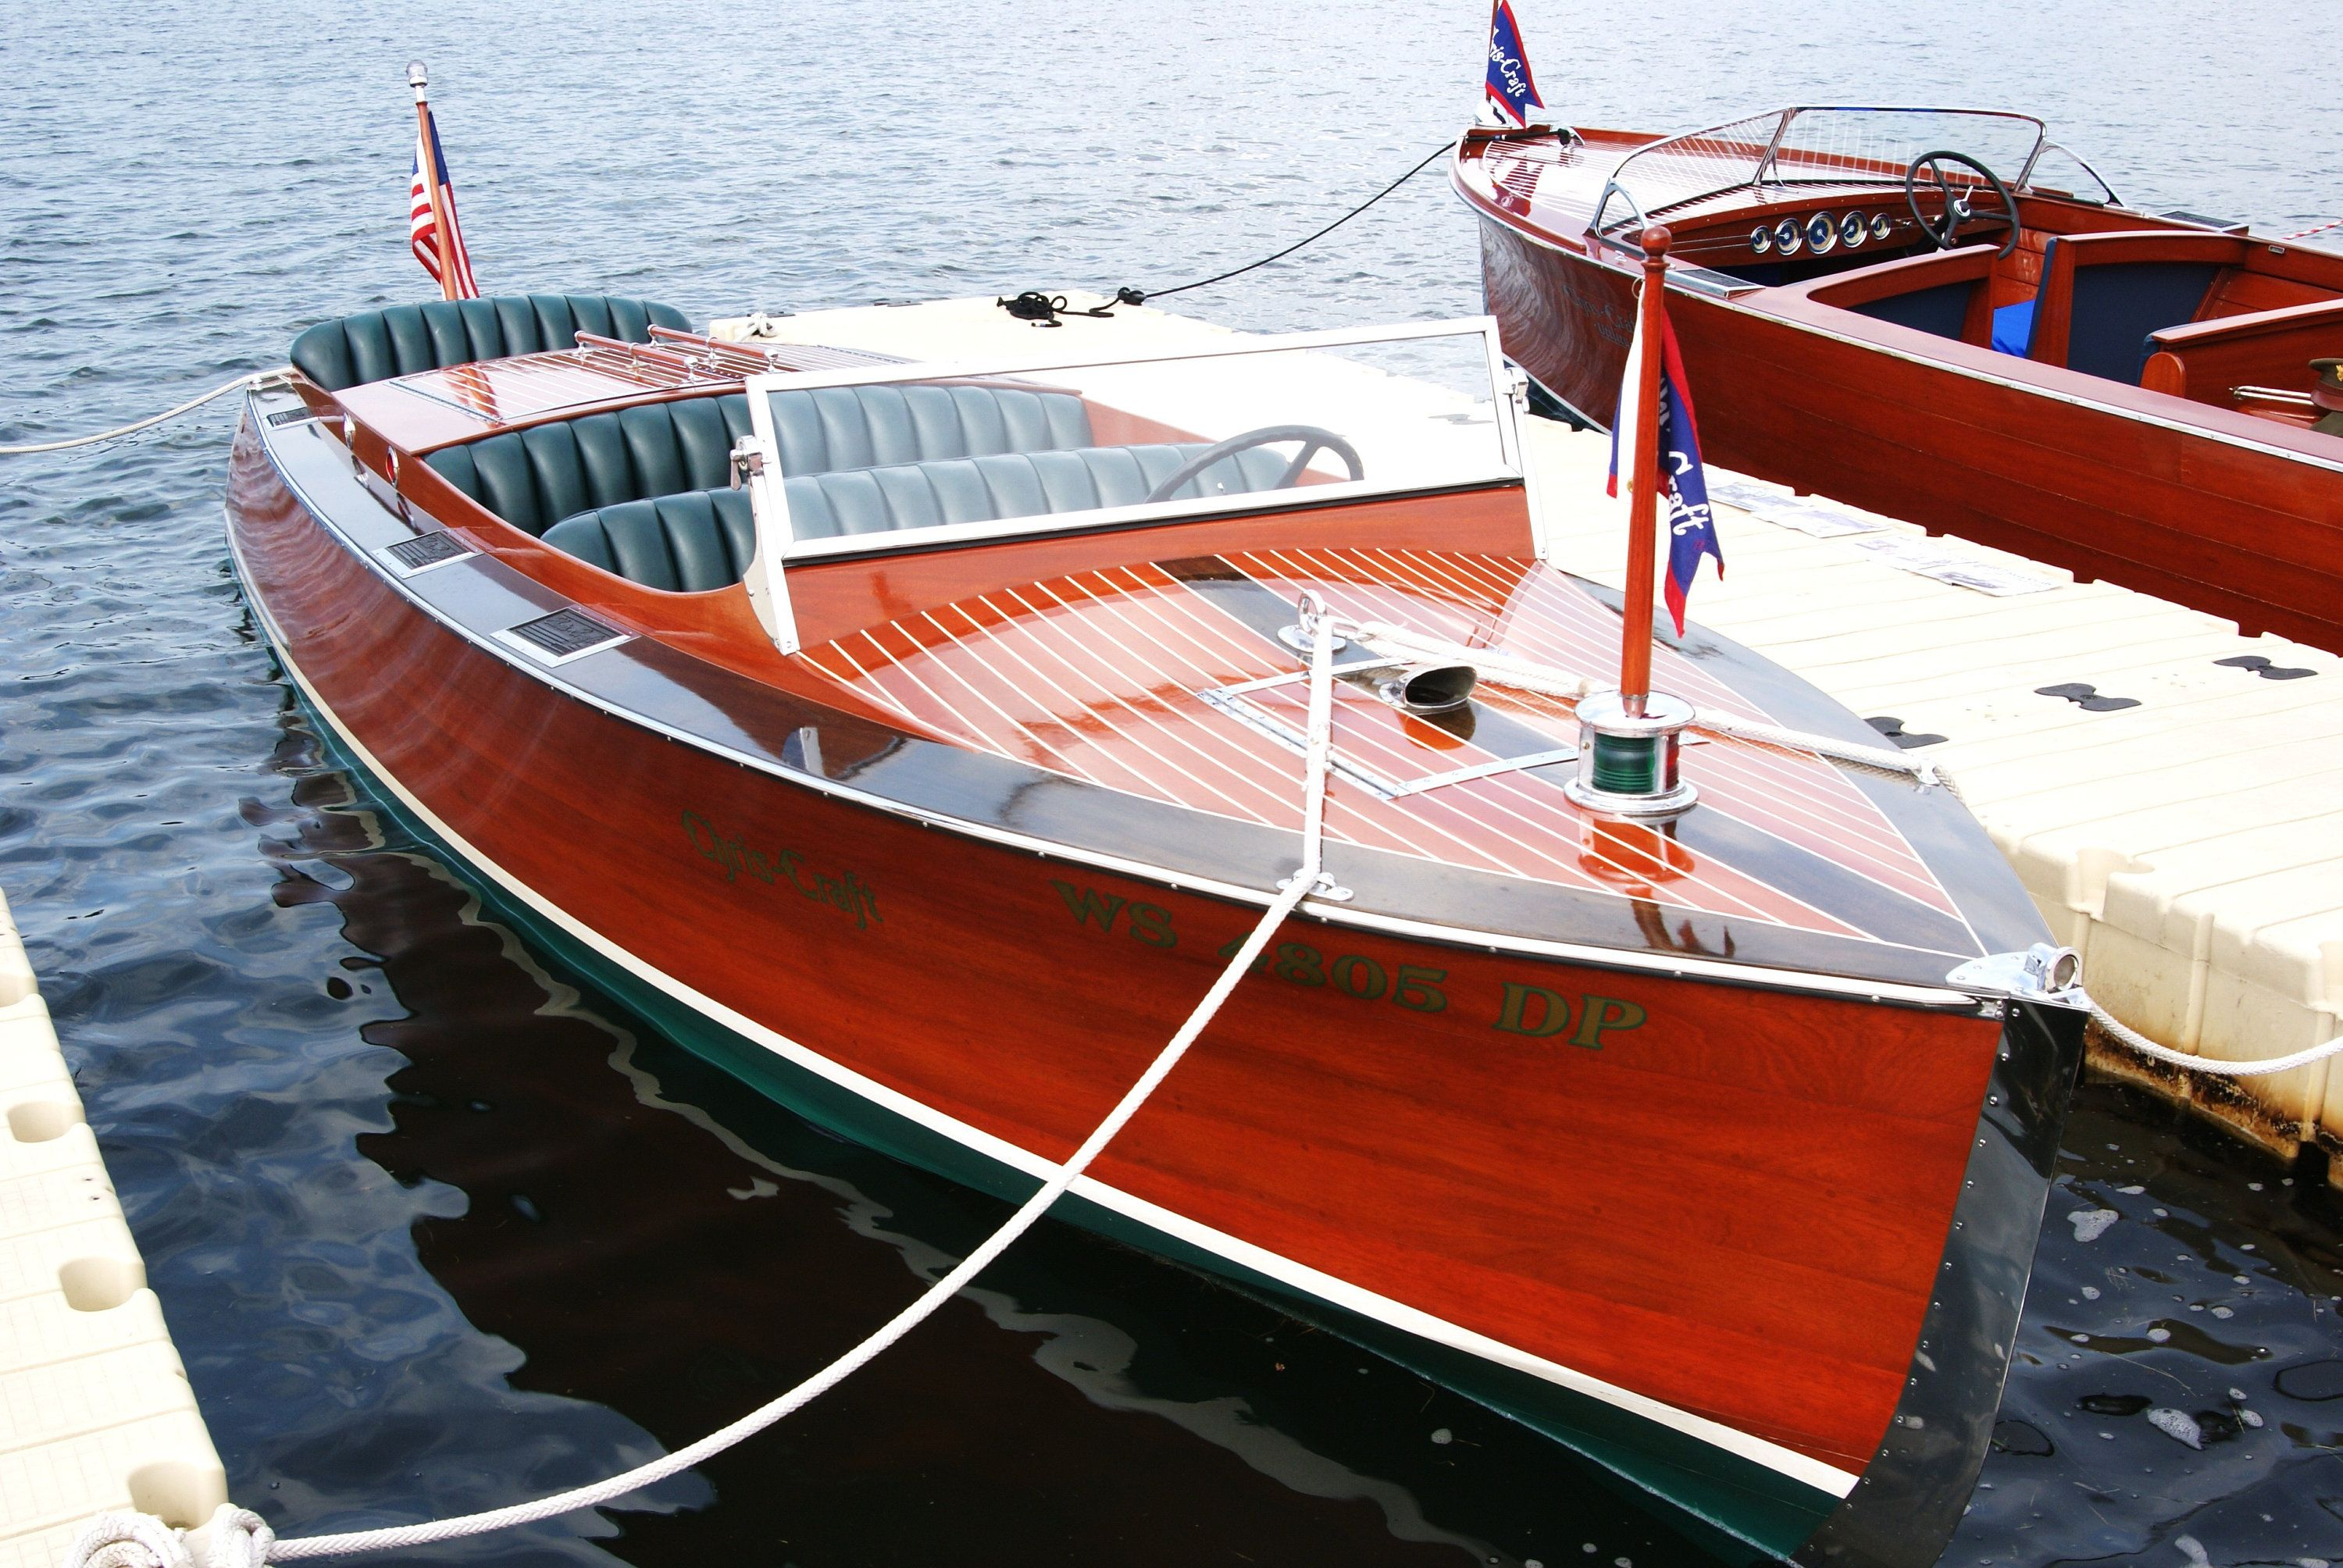 27+ Chris craft wooden boats for sale wisconsin ideas in 2021